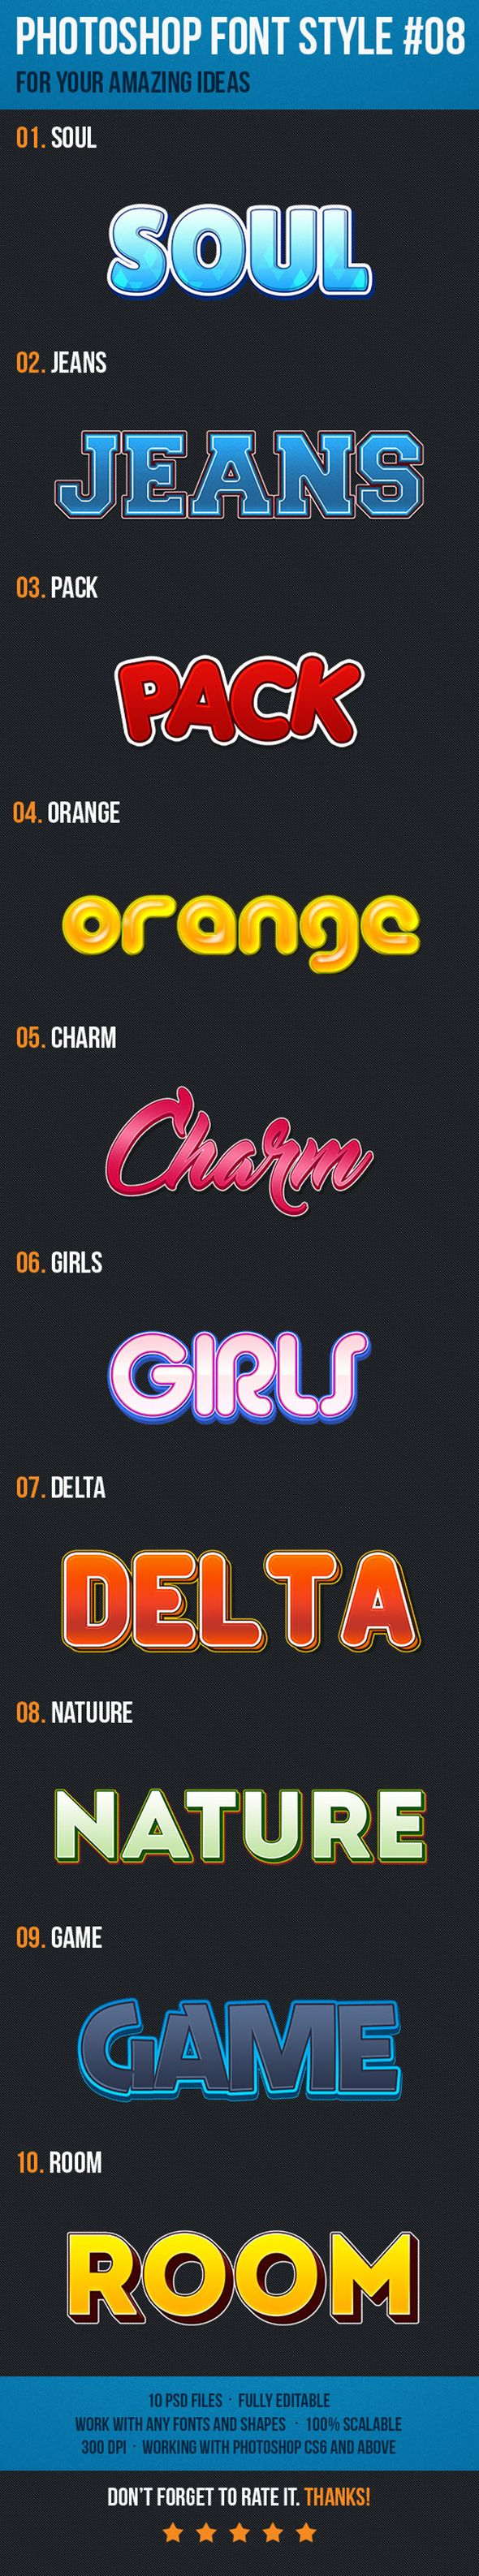 10 Font Style for Game Logo. Download here: http://graphicriver.net/item/10-font-style-for-game-logo-08/15504618?ref=ksioks